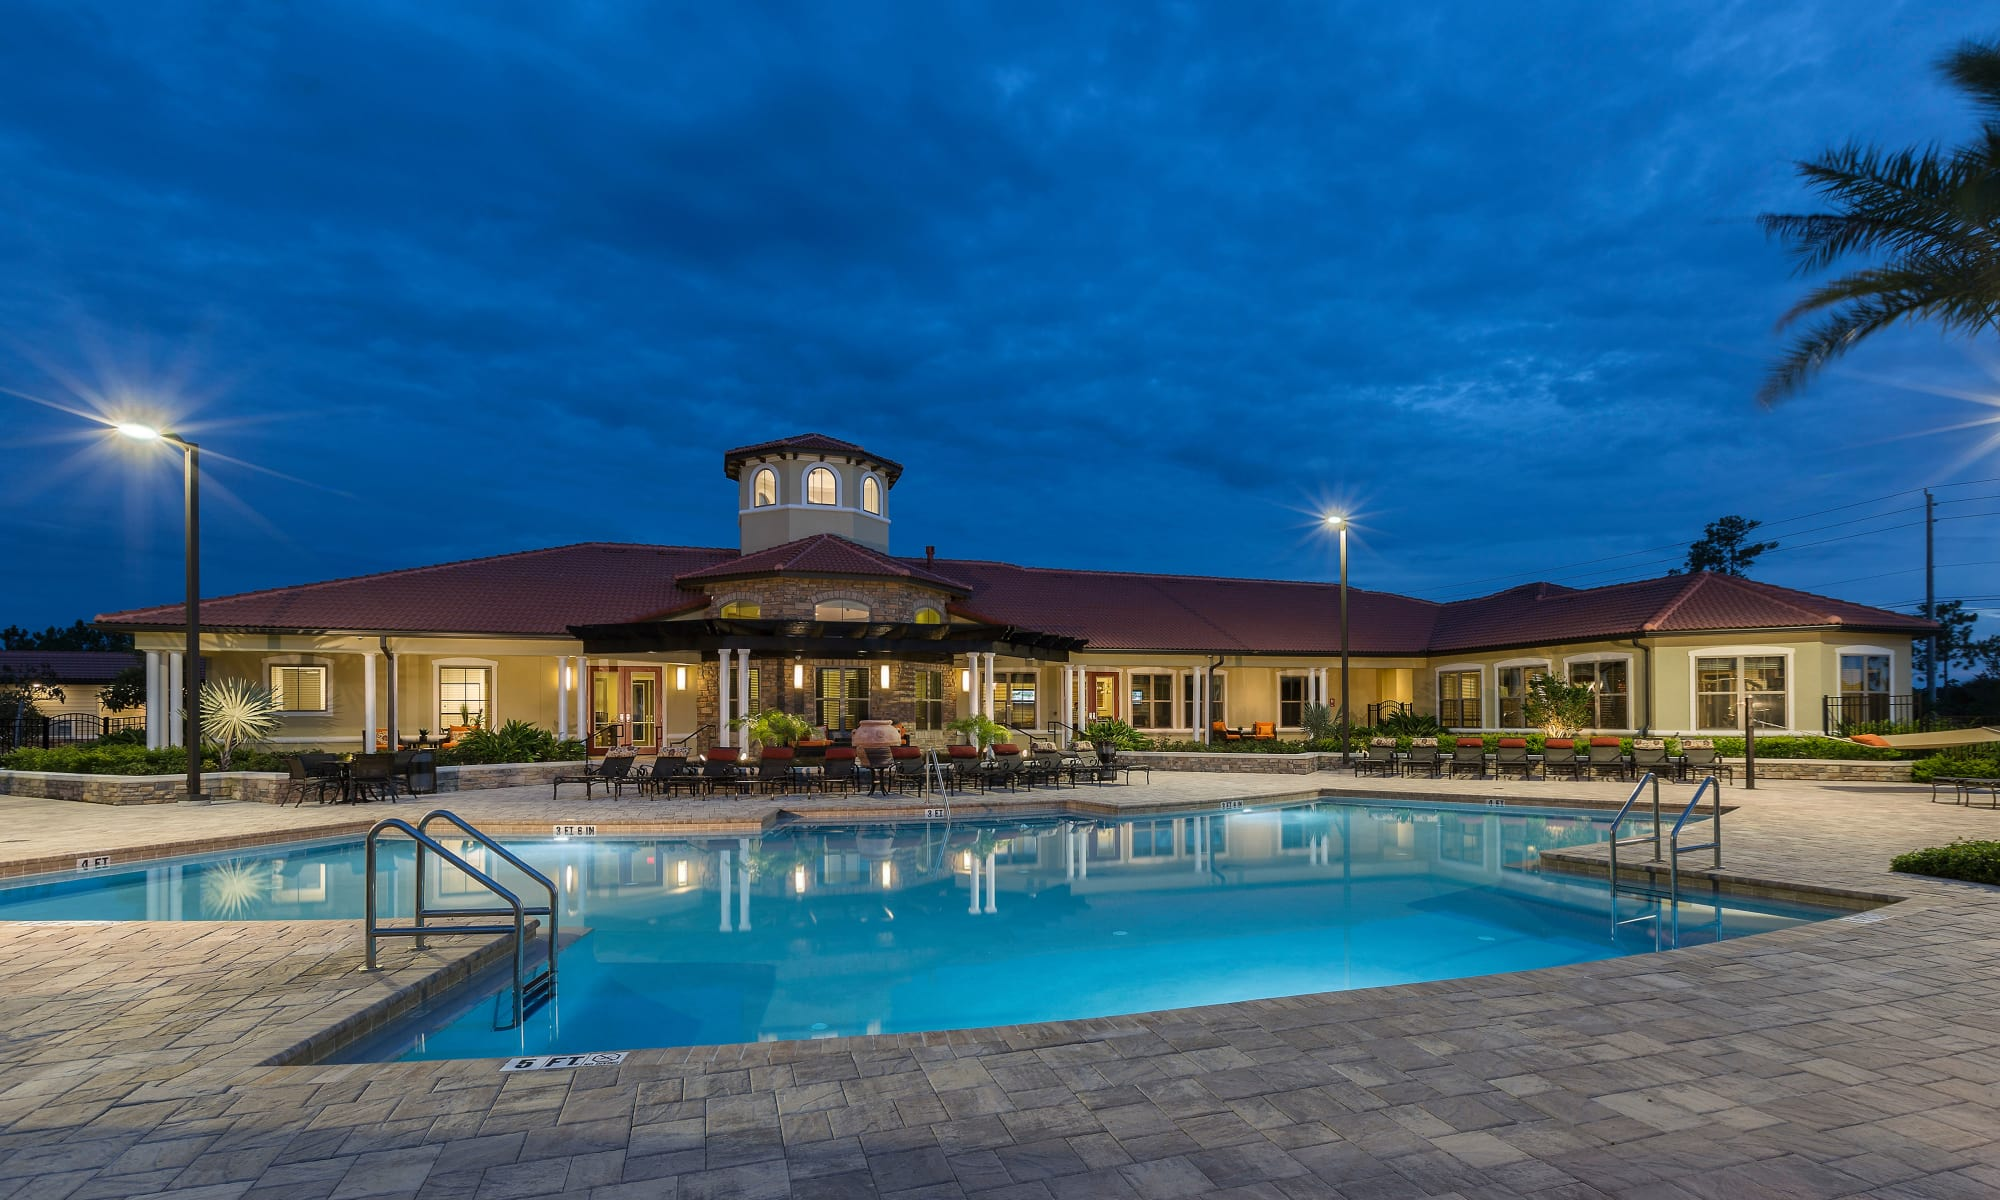 Luxury apartments in Daytona Beach, FL